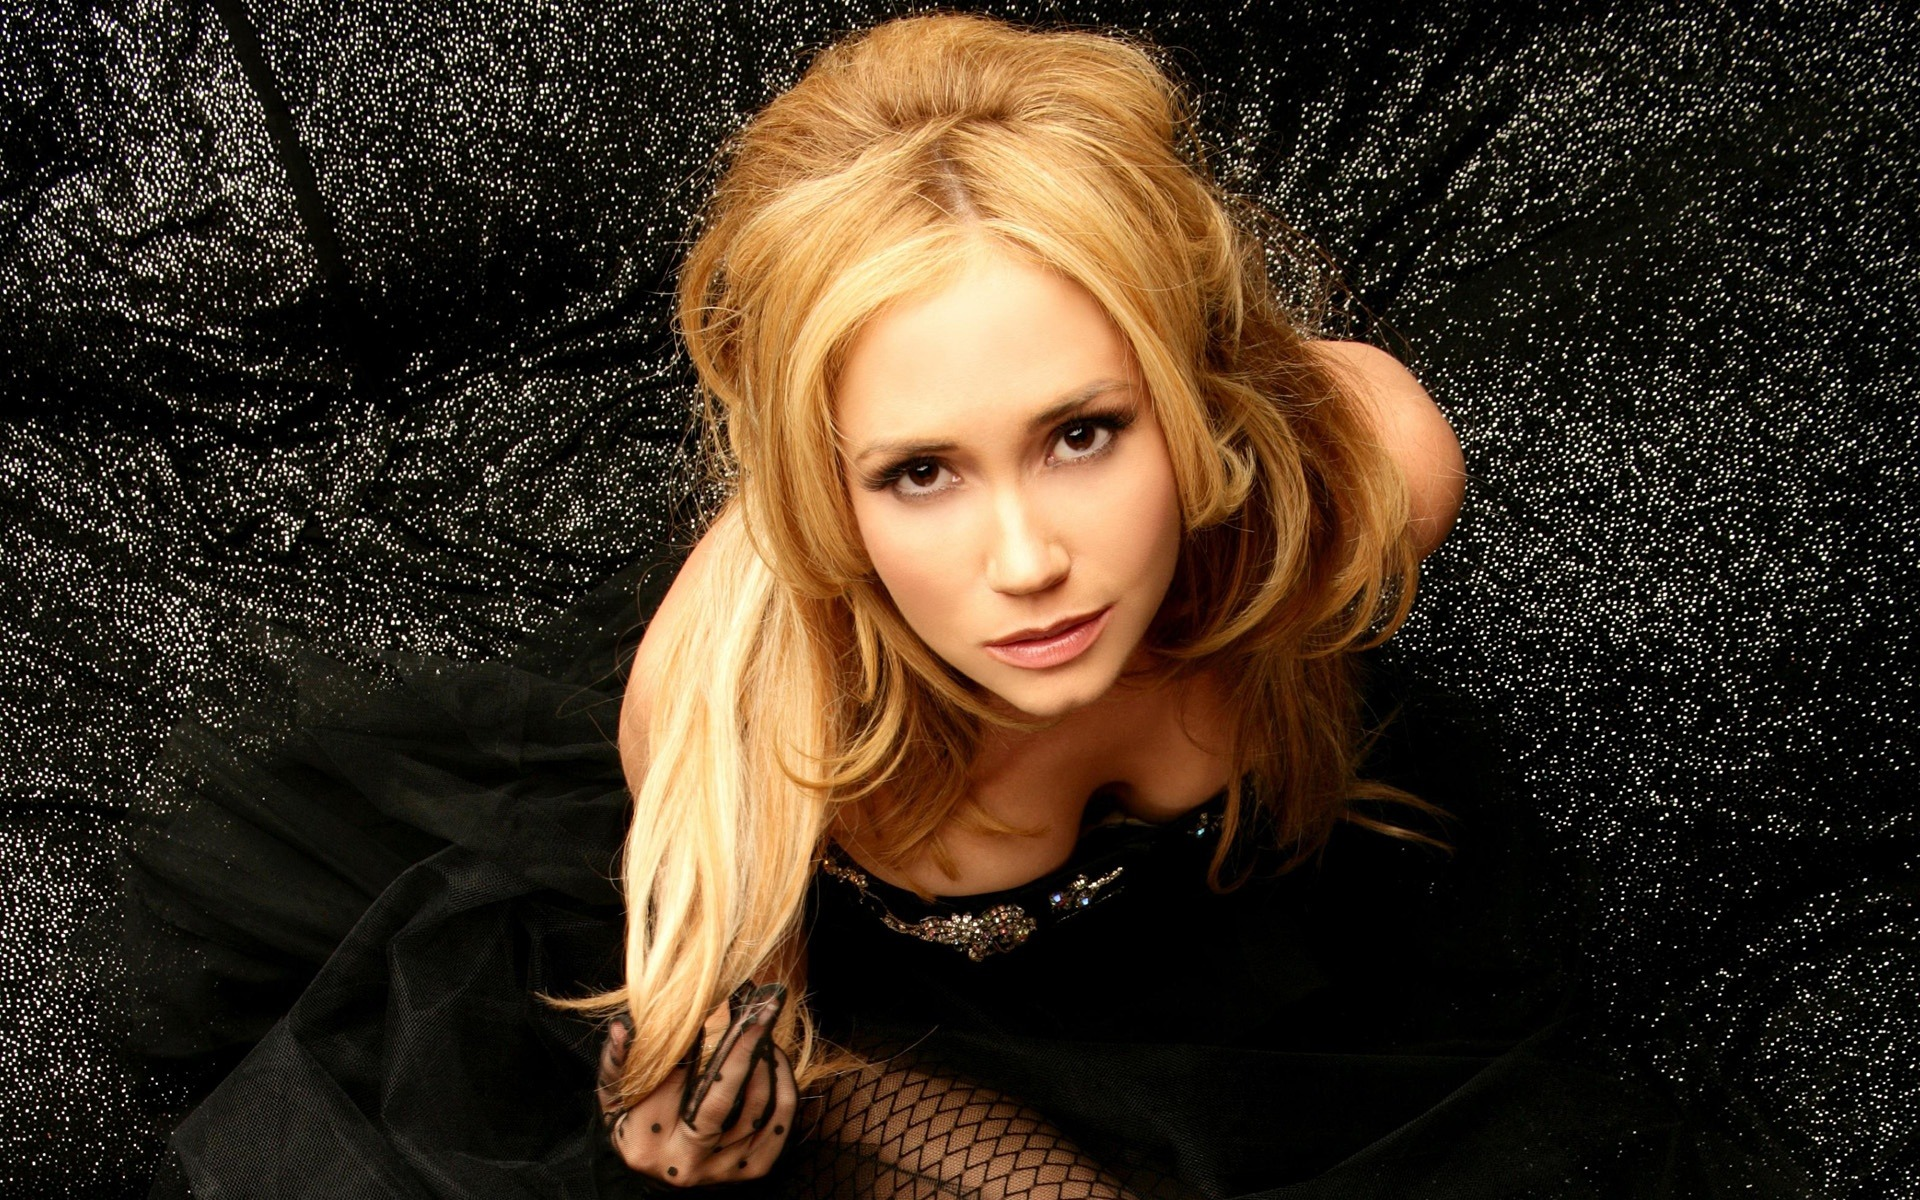 Ashley Jones #012 - 1920x1200 Wallpapers Pictures Photos Images